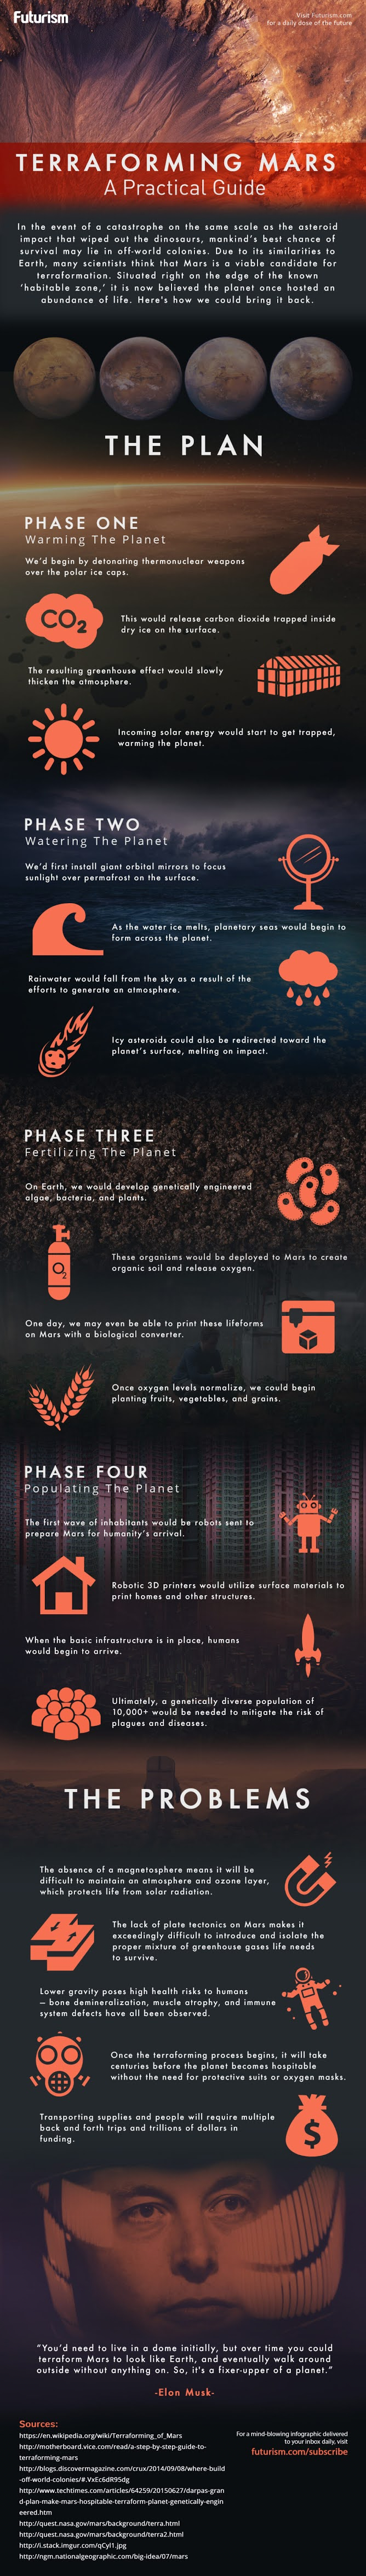 How We Can Make the Red Planet Habitable? - Infographic